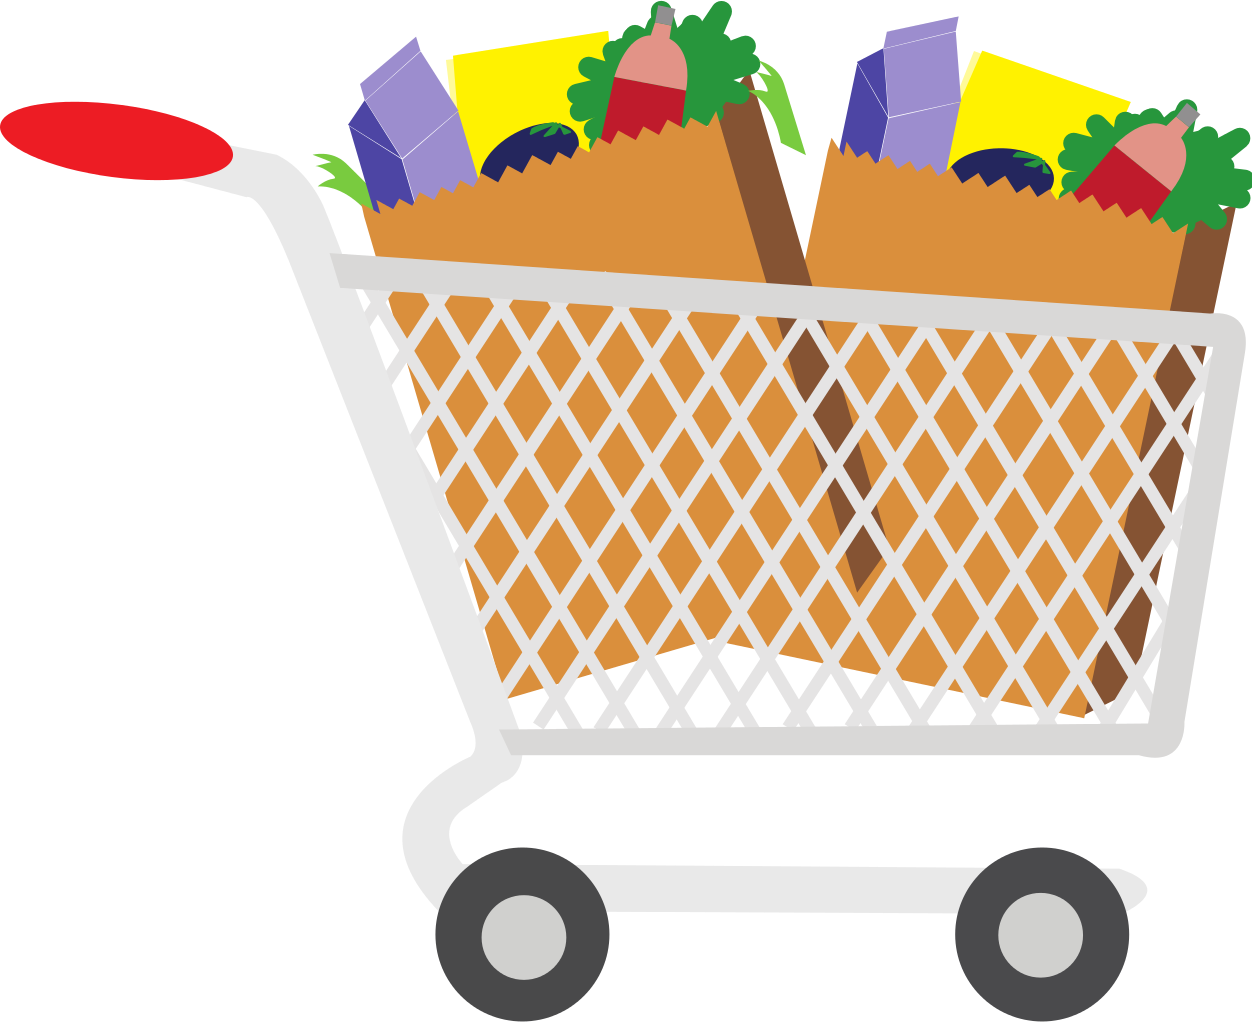 Panda free images groceryclipart. Mall clipart grocery